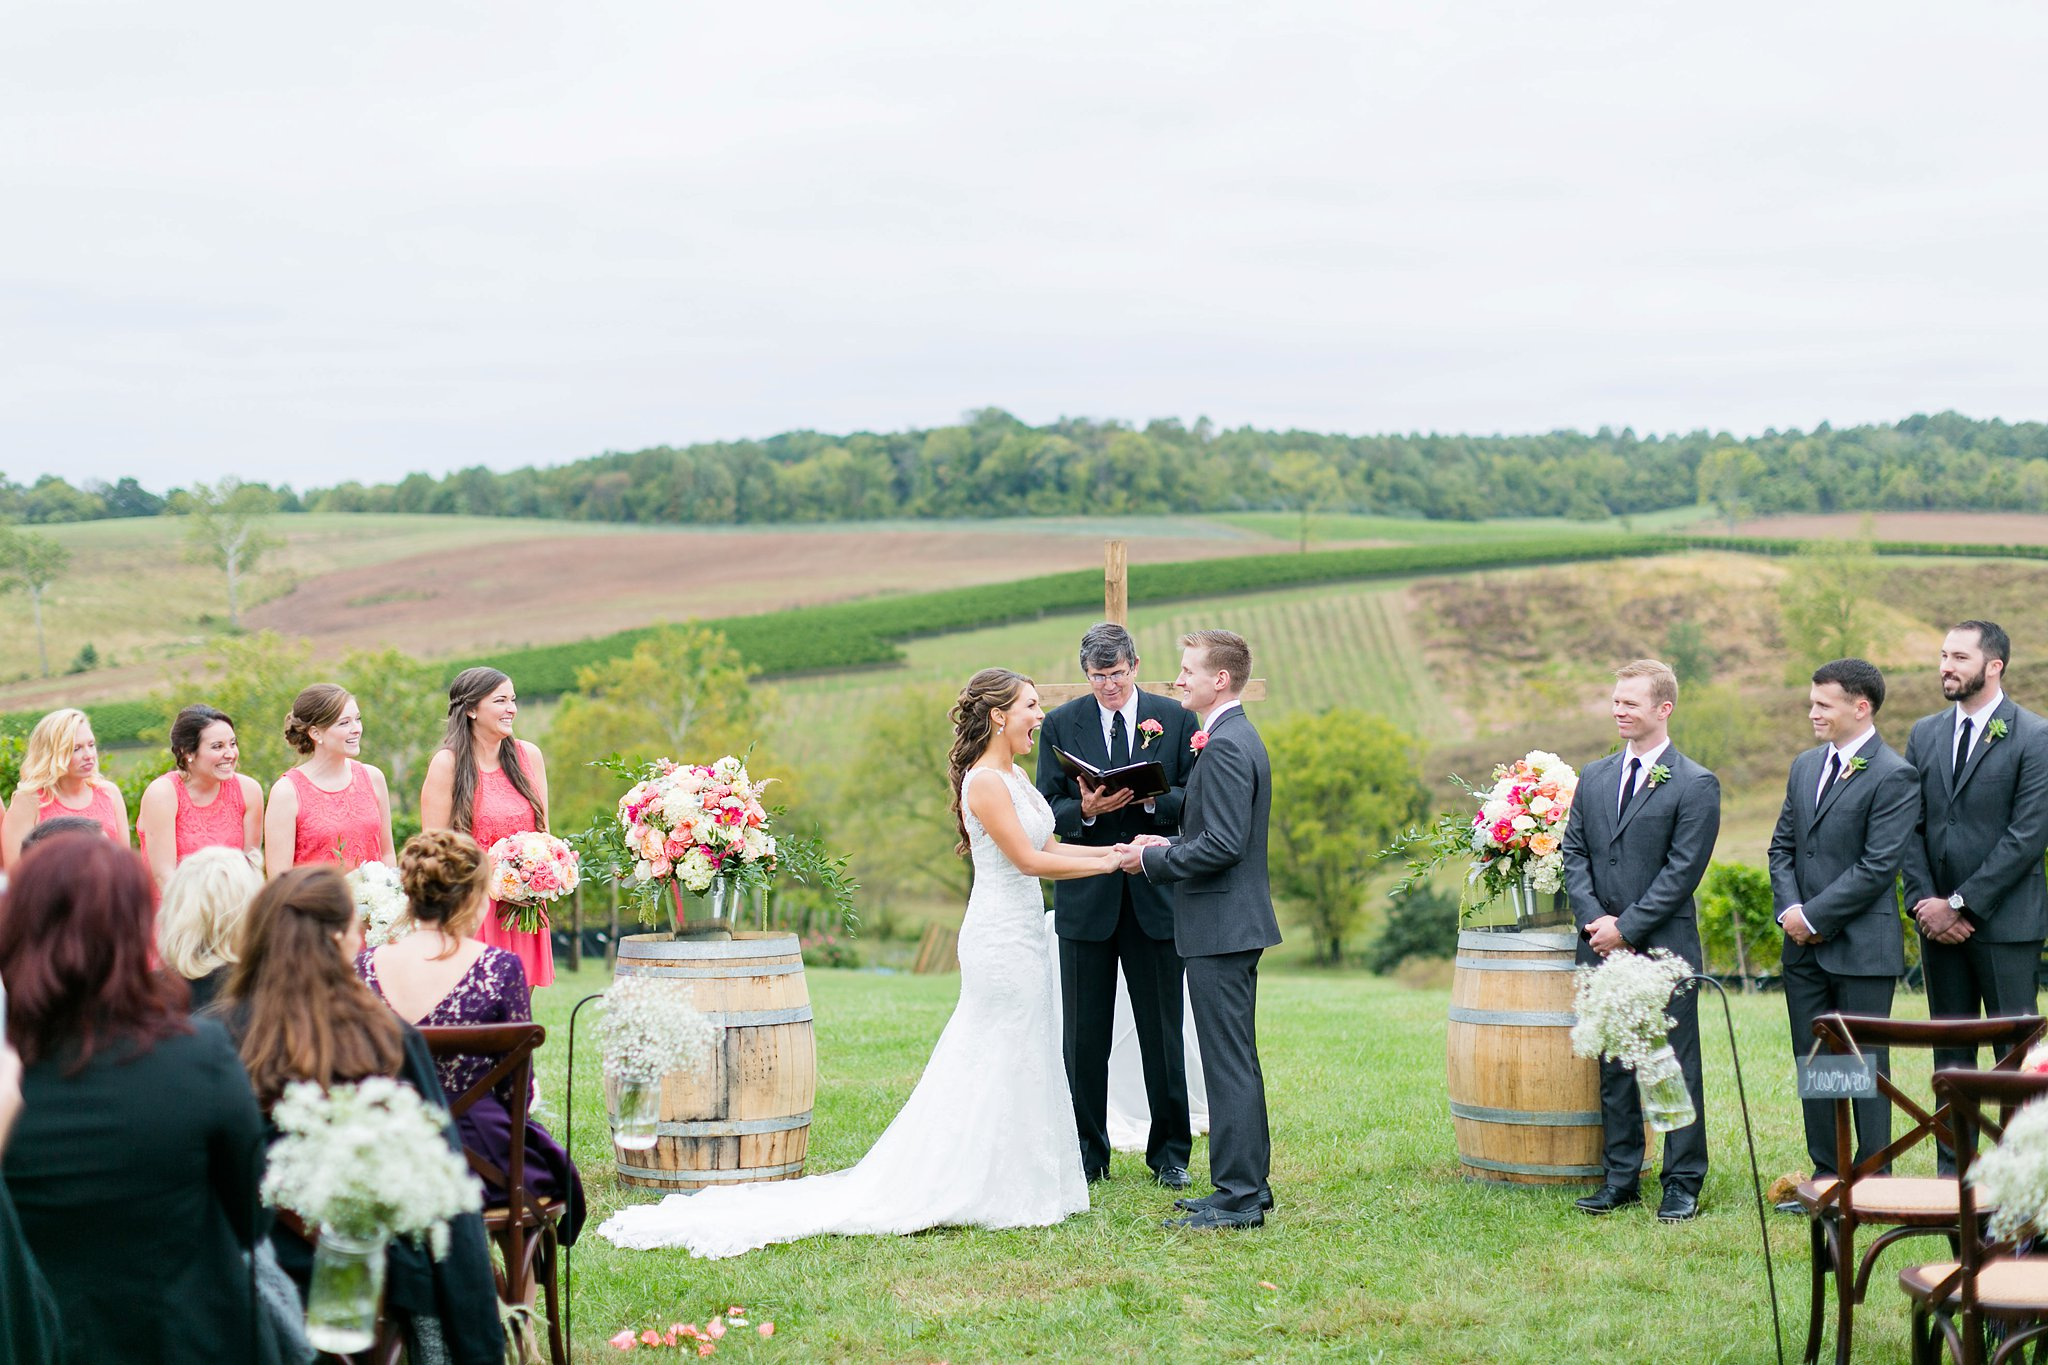 Stone Tower Winery Wedding Photos Virginia Wedding Photographer Megan Kelsey Photography Sam & Angela-158.jpg